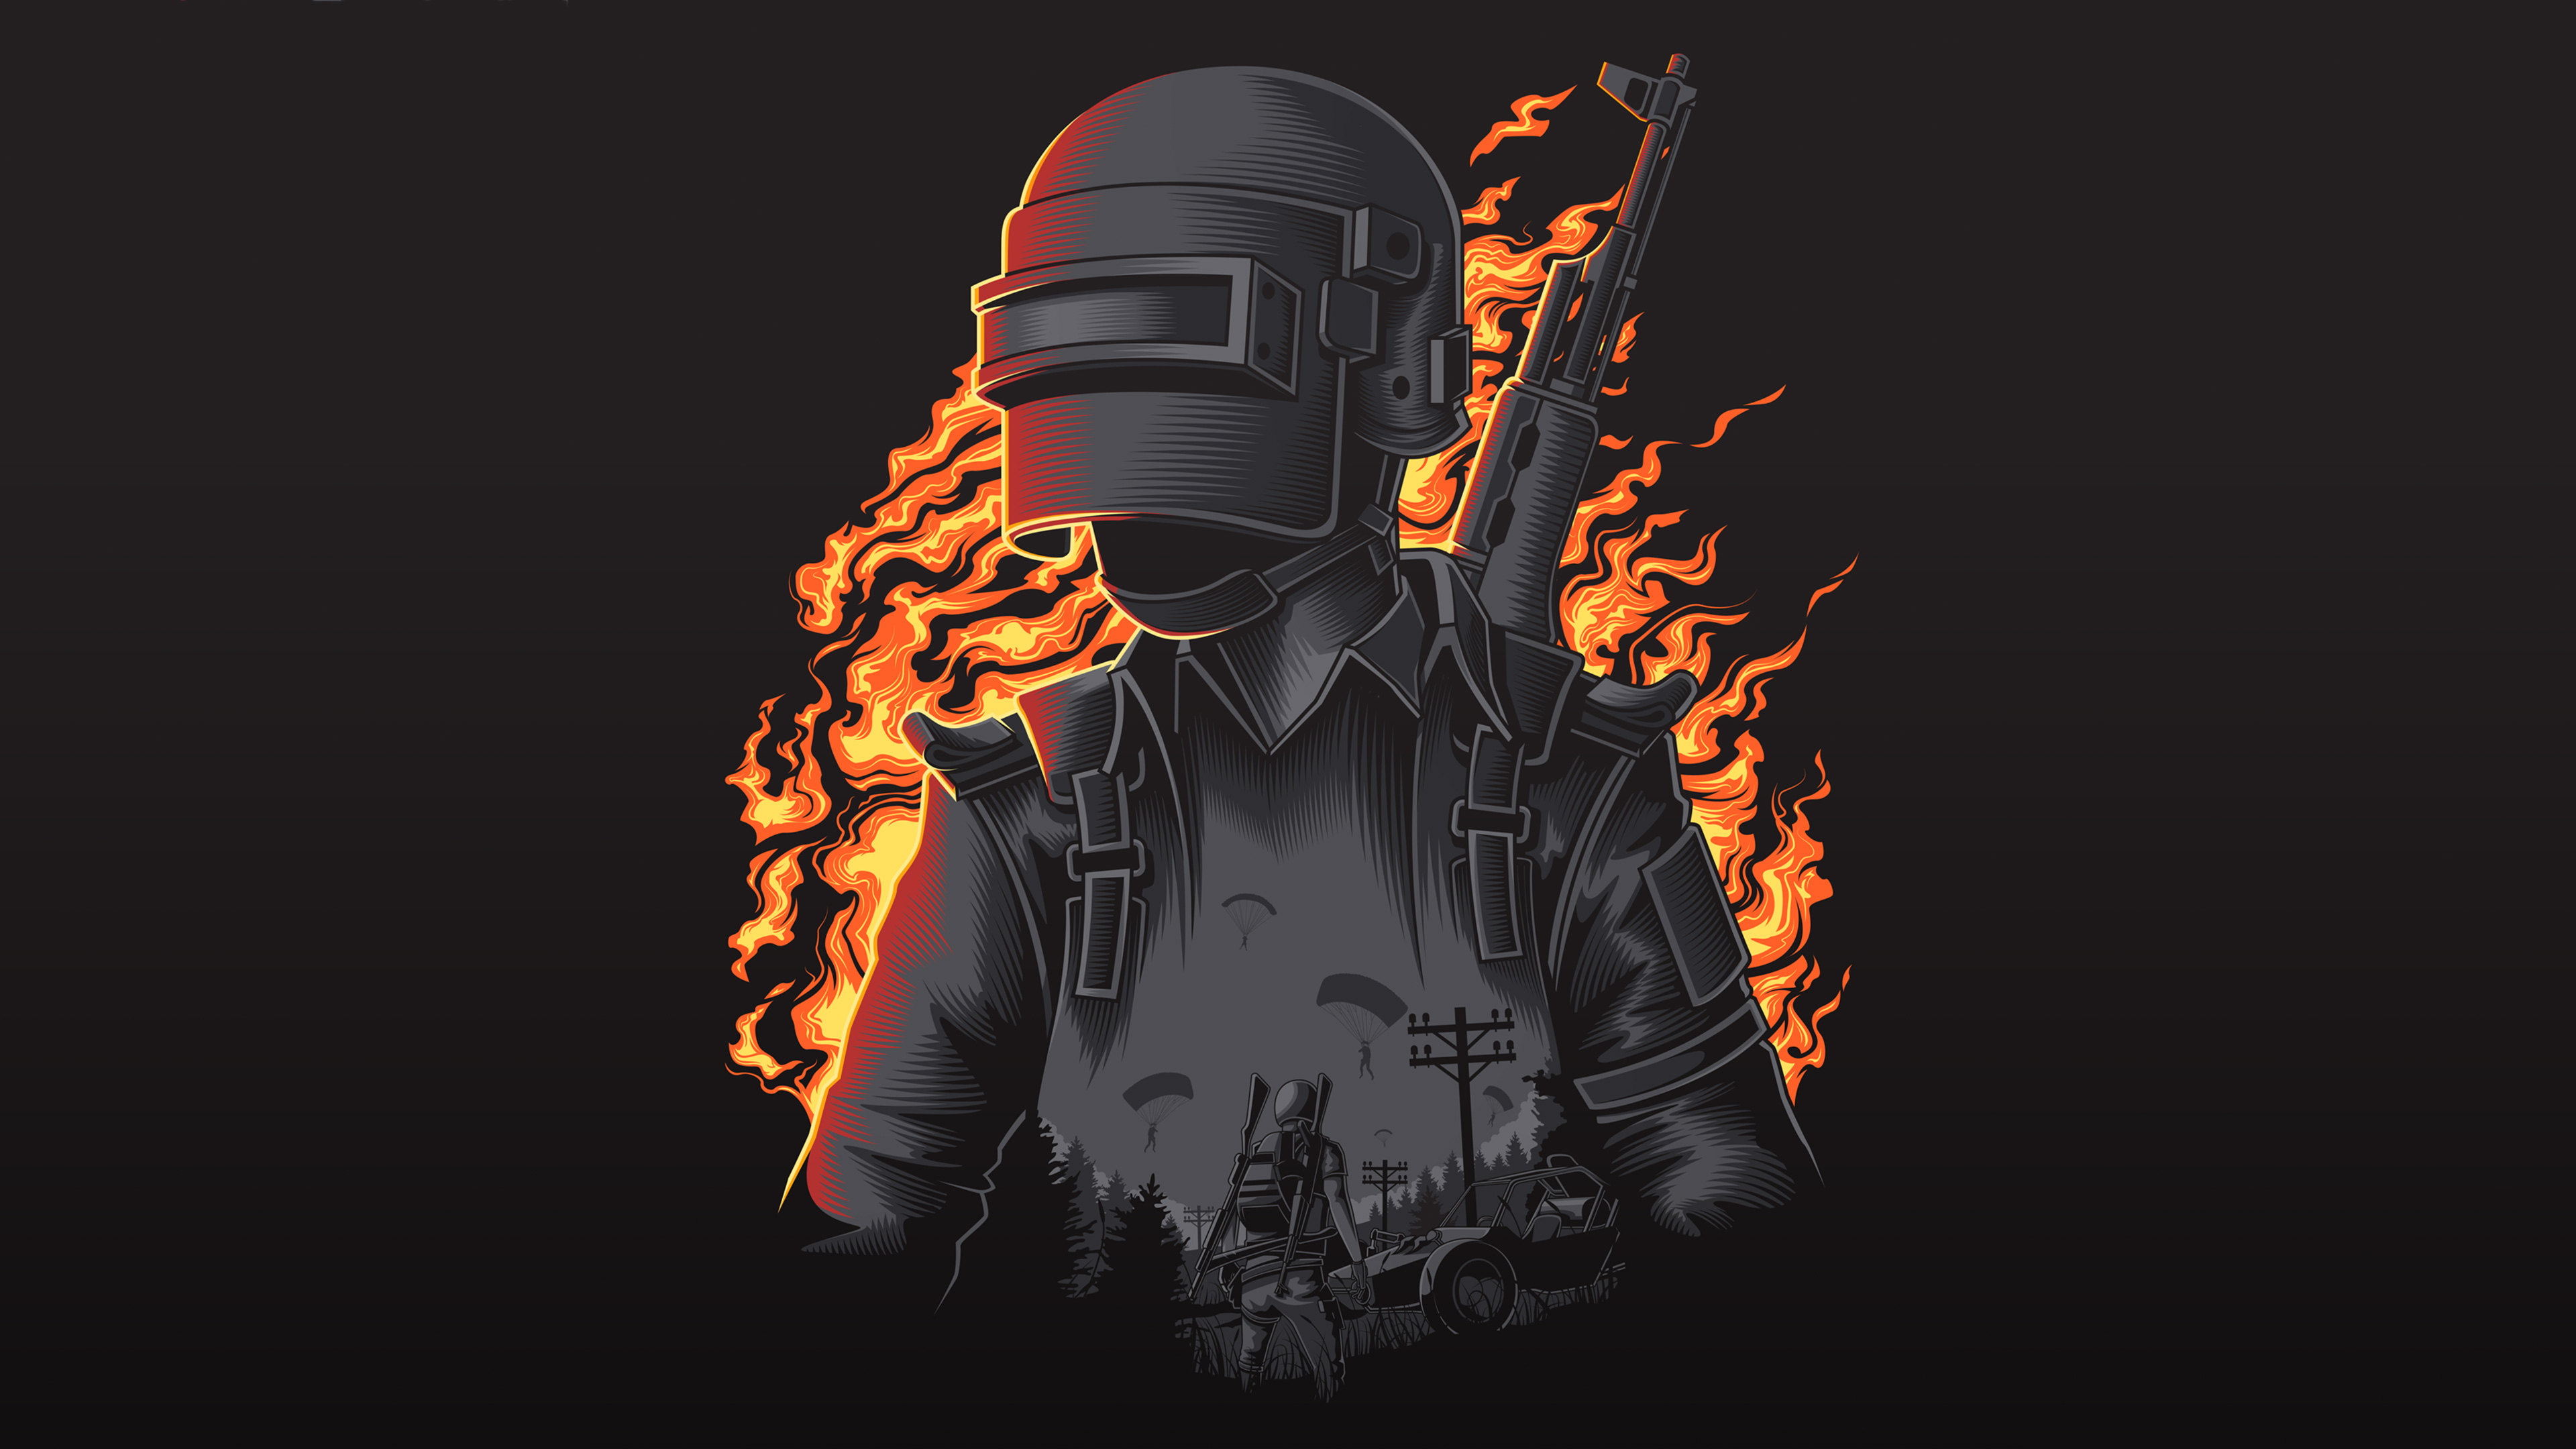 Pubg Game 4k Wallpaper Download: Pubg Illustration 4k, HD Games, 4k Wallpapers, Images